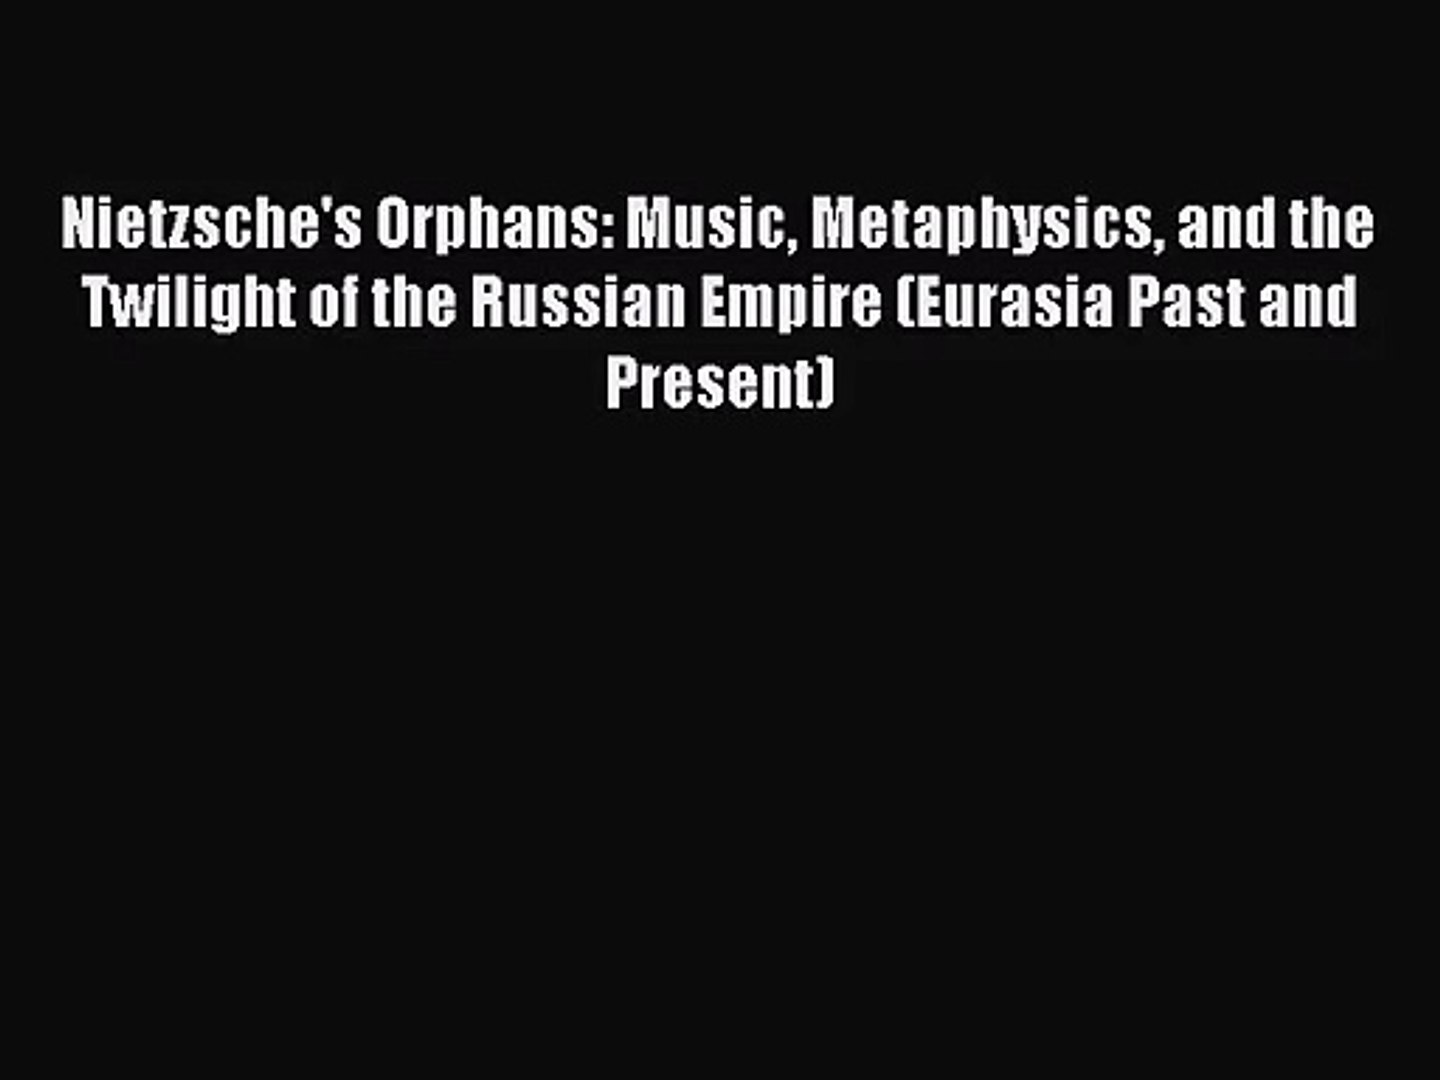 [PDF Download] Nietzsche's Orphans: Music Metaphysics and the Twilight of the Russian Empire